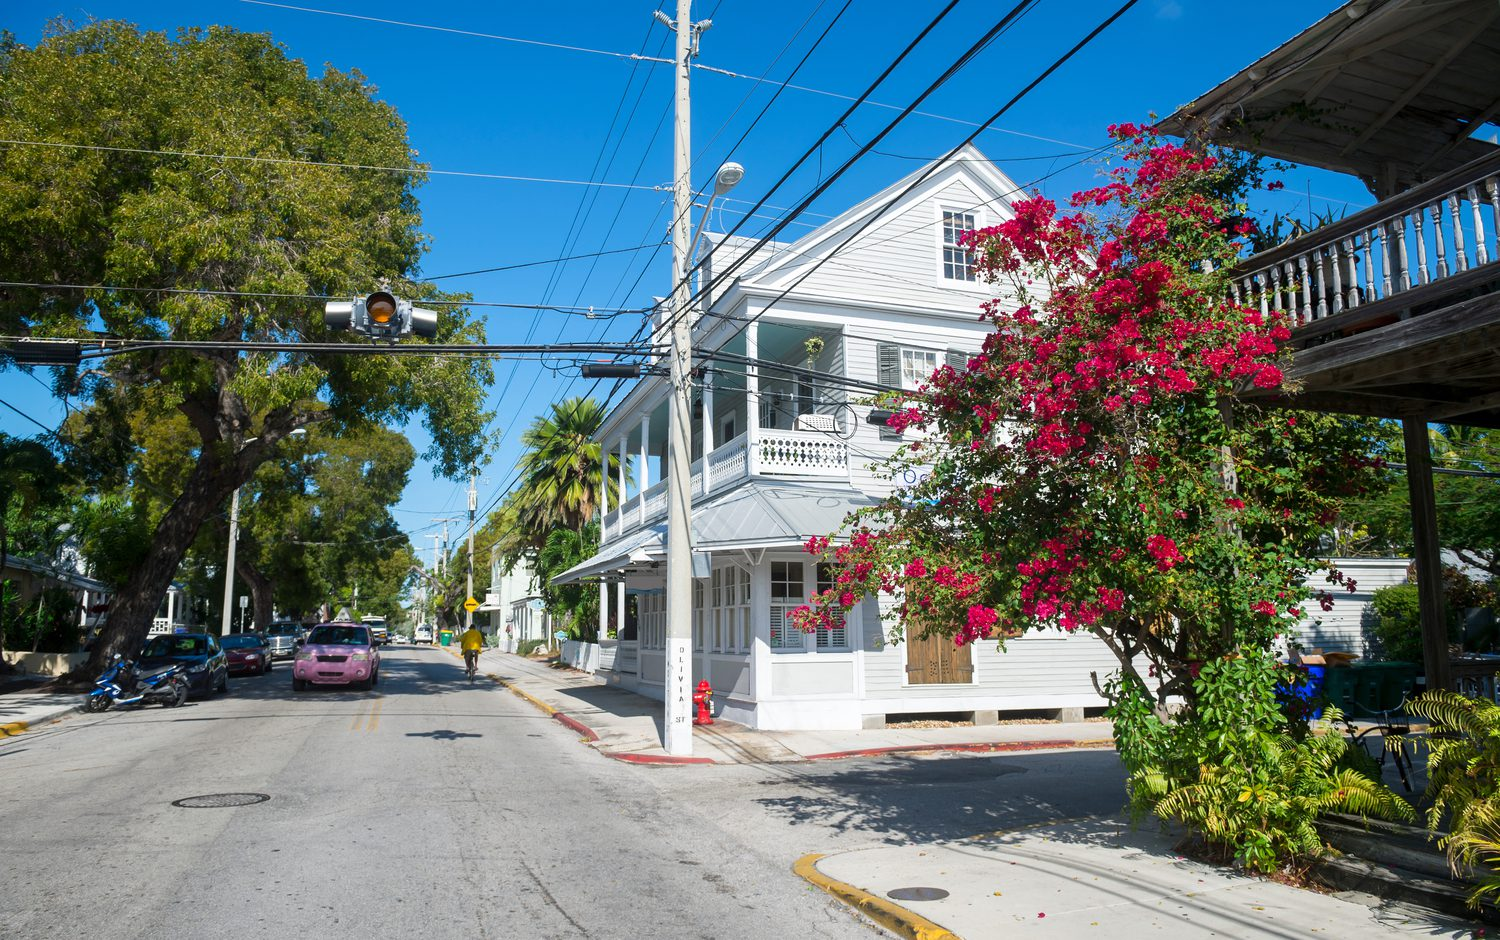 Picturesque street in Old Town in Key West